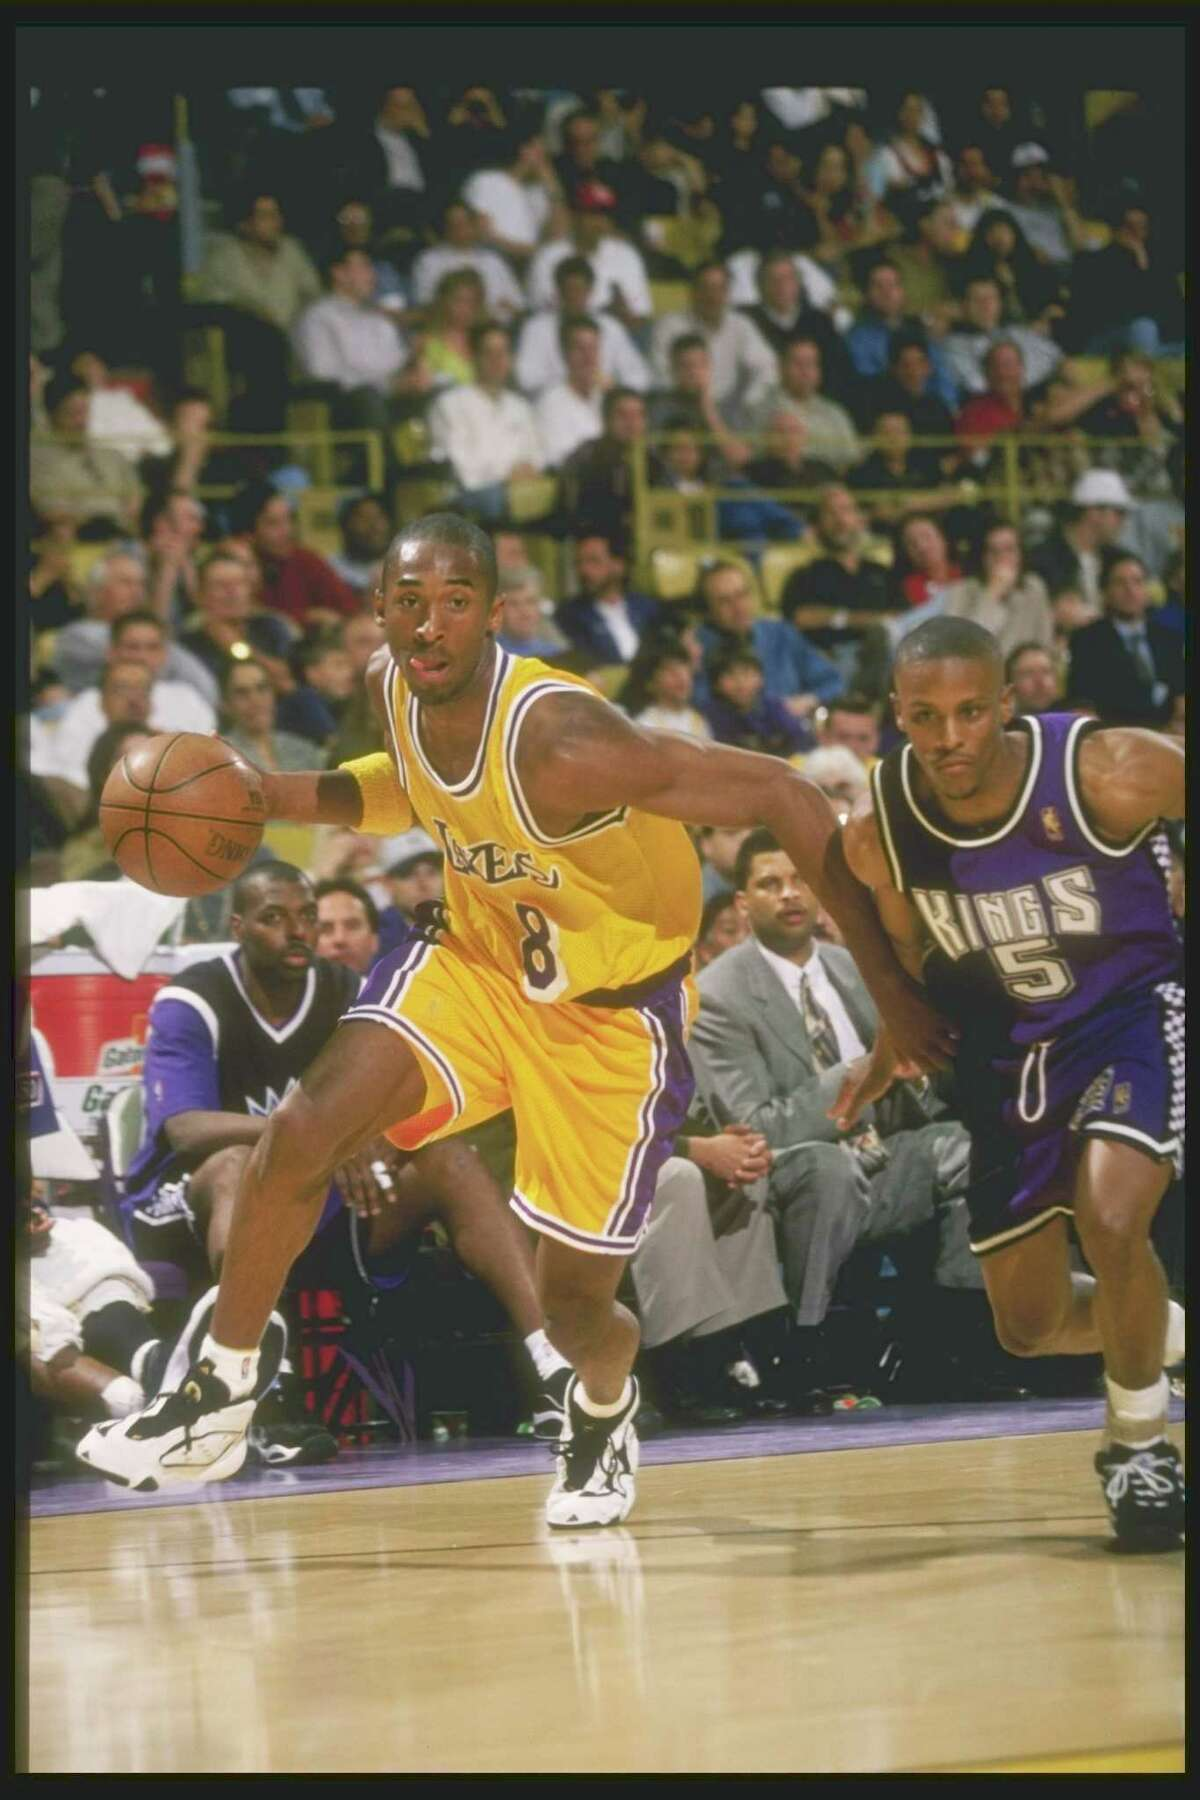 1996-97 season: Kobe Bryant was an 18-year-old rookie for the Los Angeles Lakers, winning the Slam Dunk Contest.